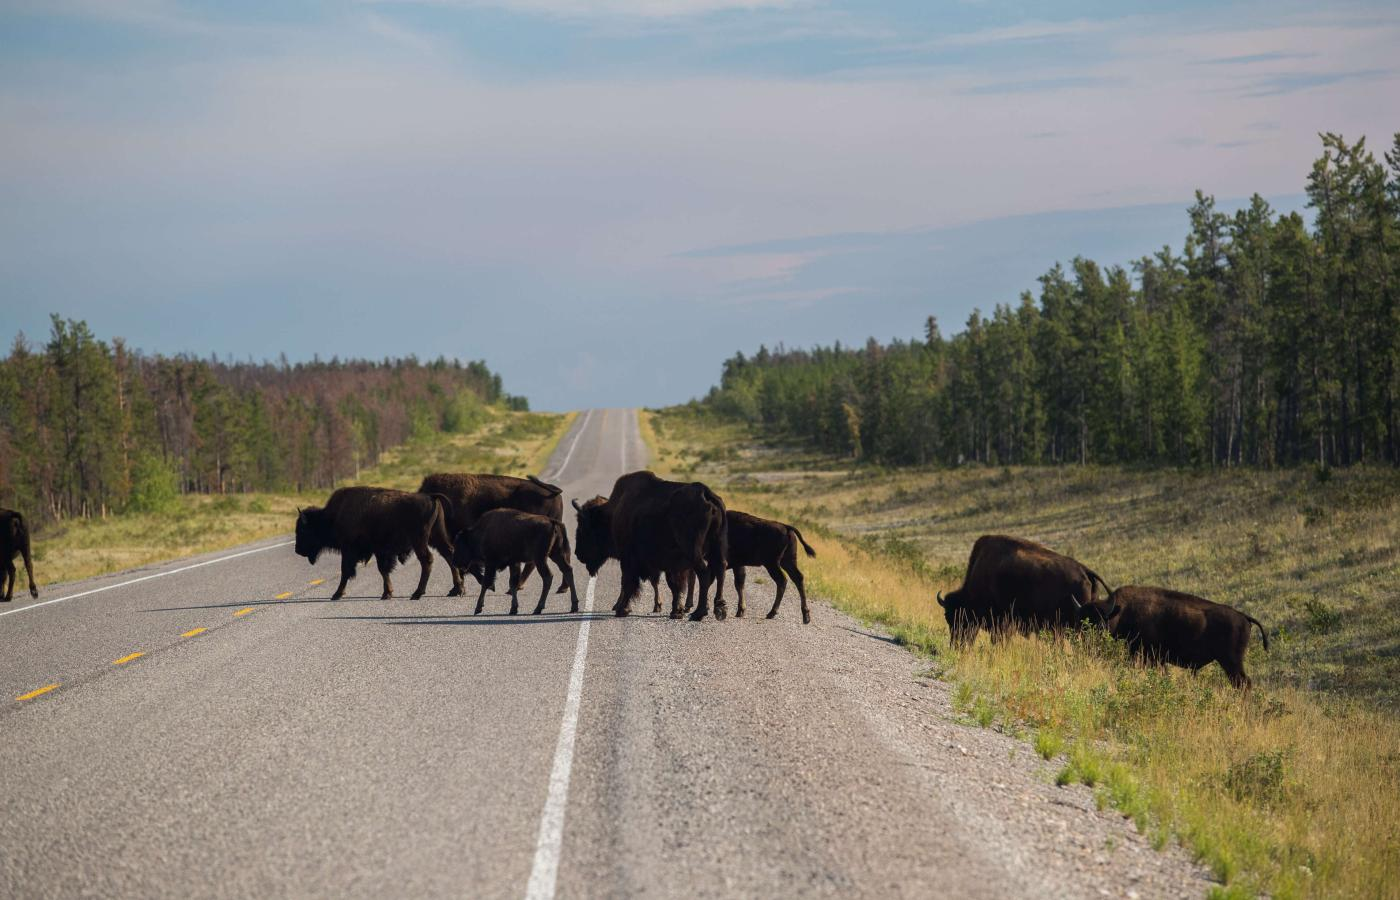 Bison crossing the highway